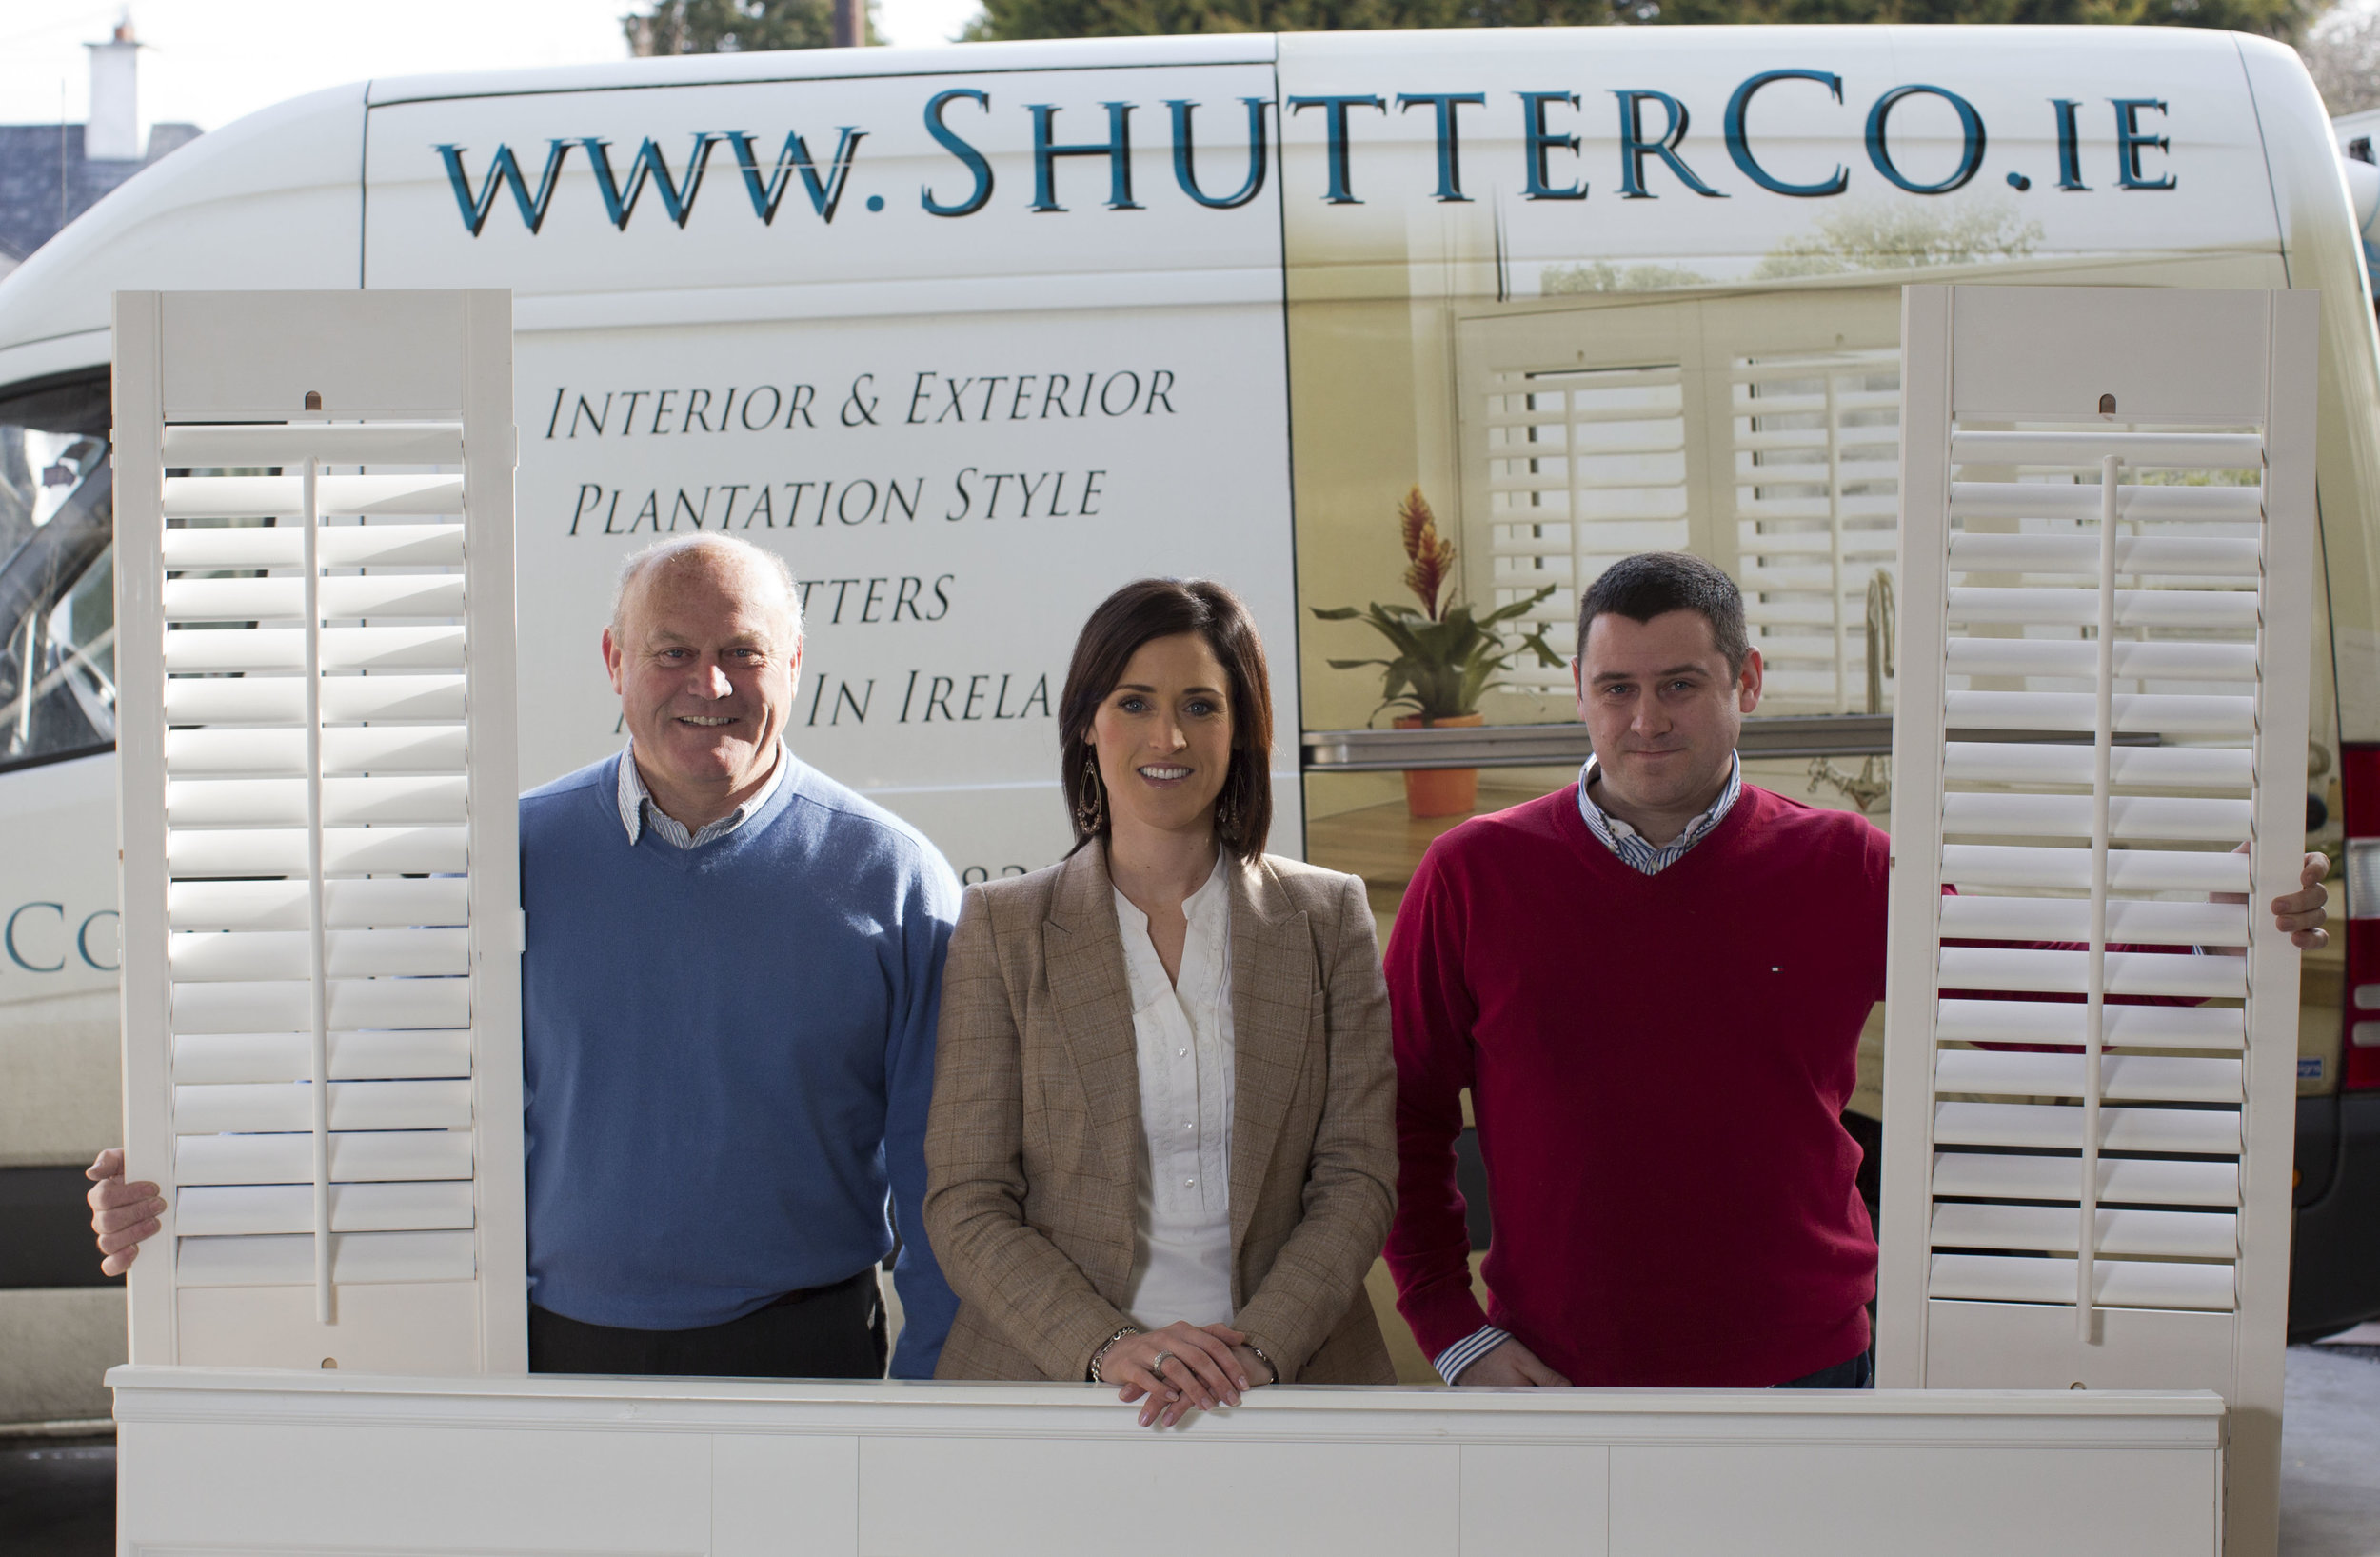 The ShutterCo Family. (L-R: Brendan, Sarah & Barry Rice)